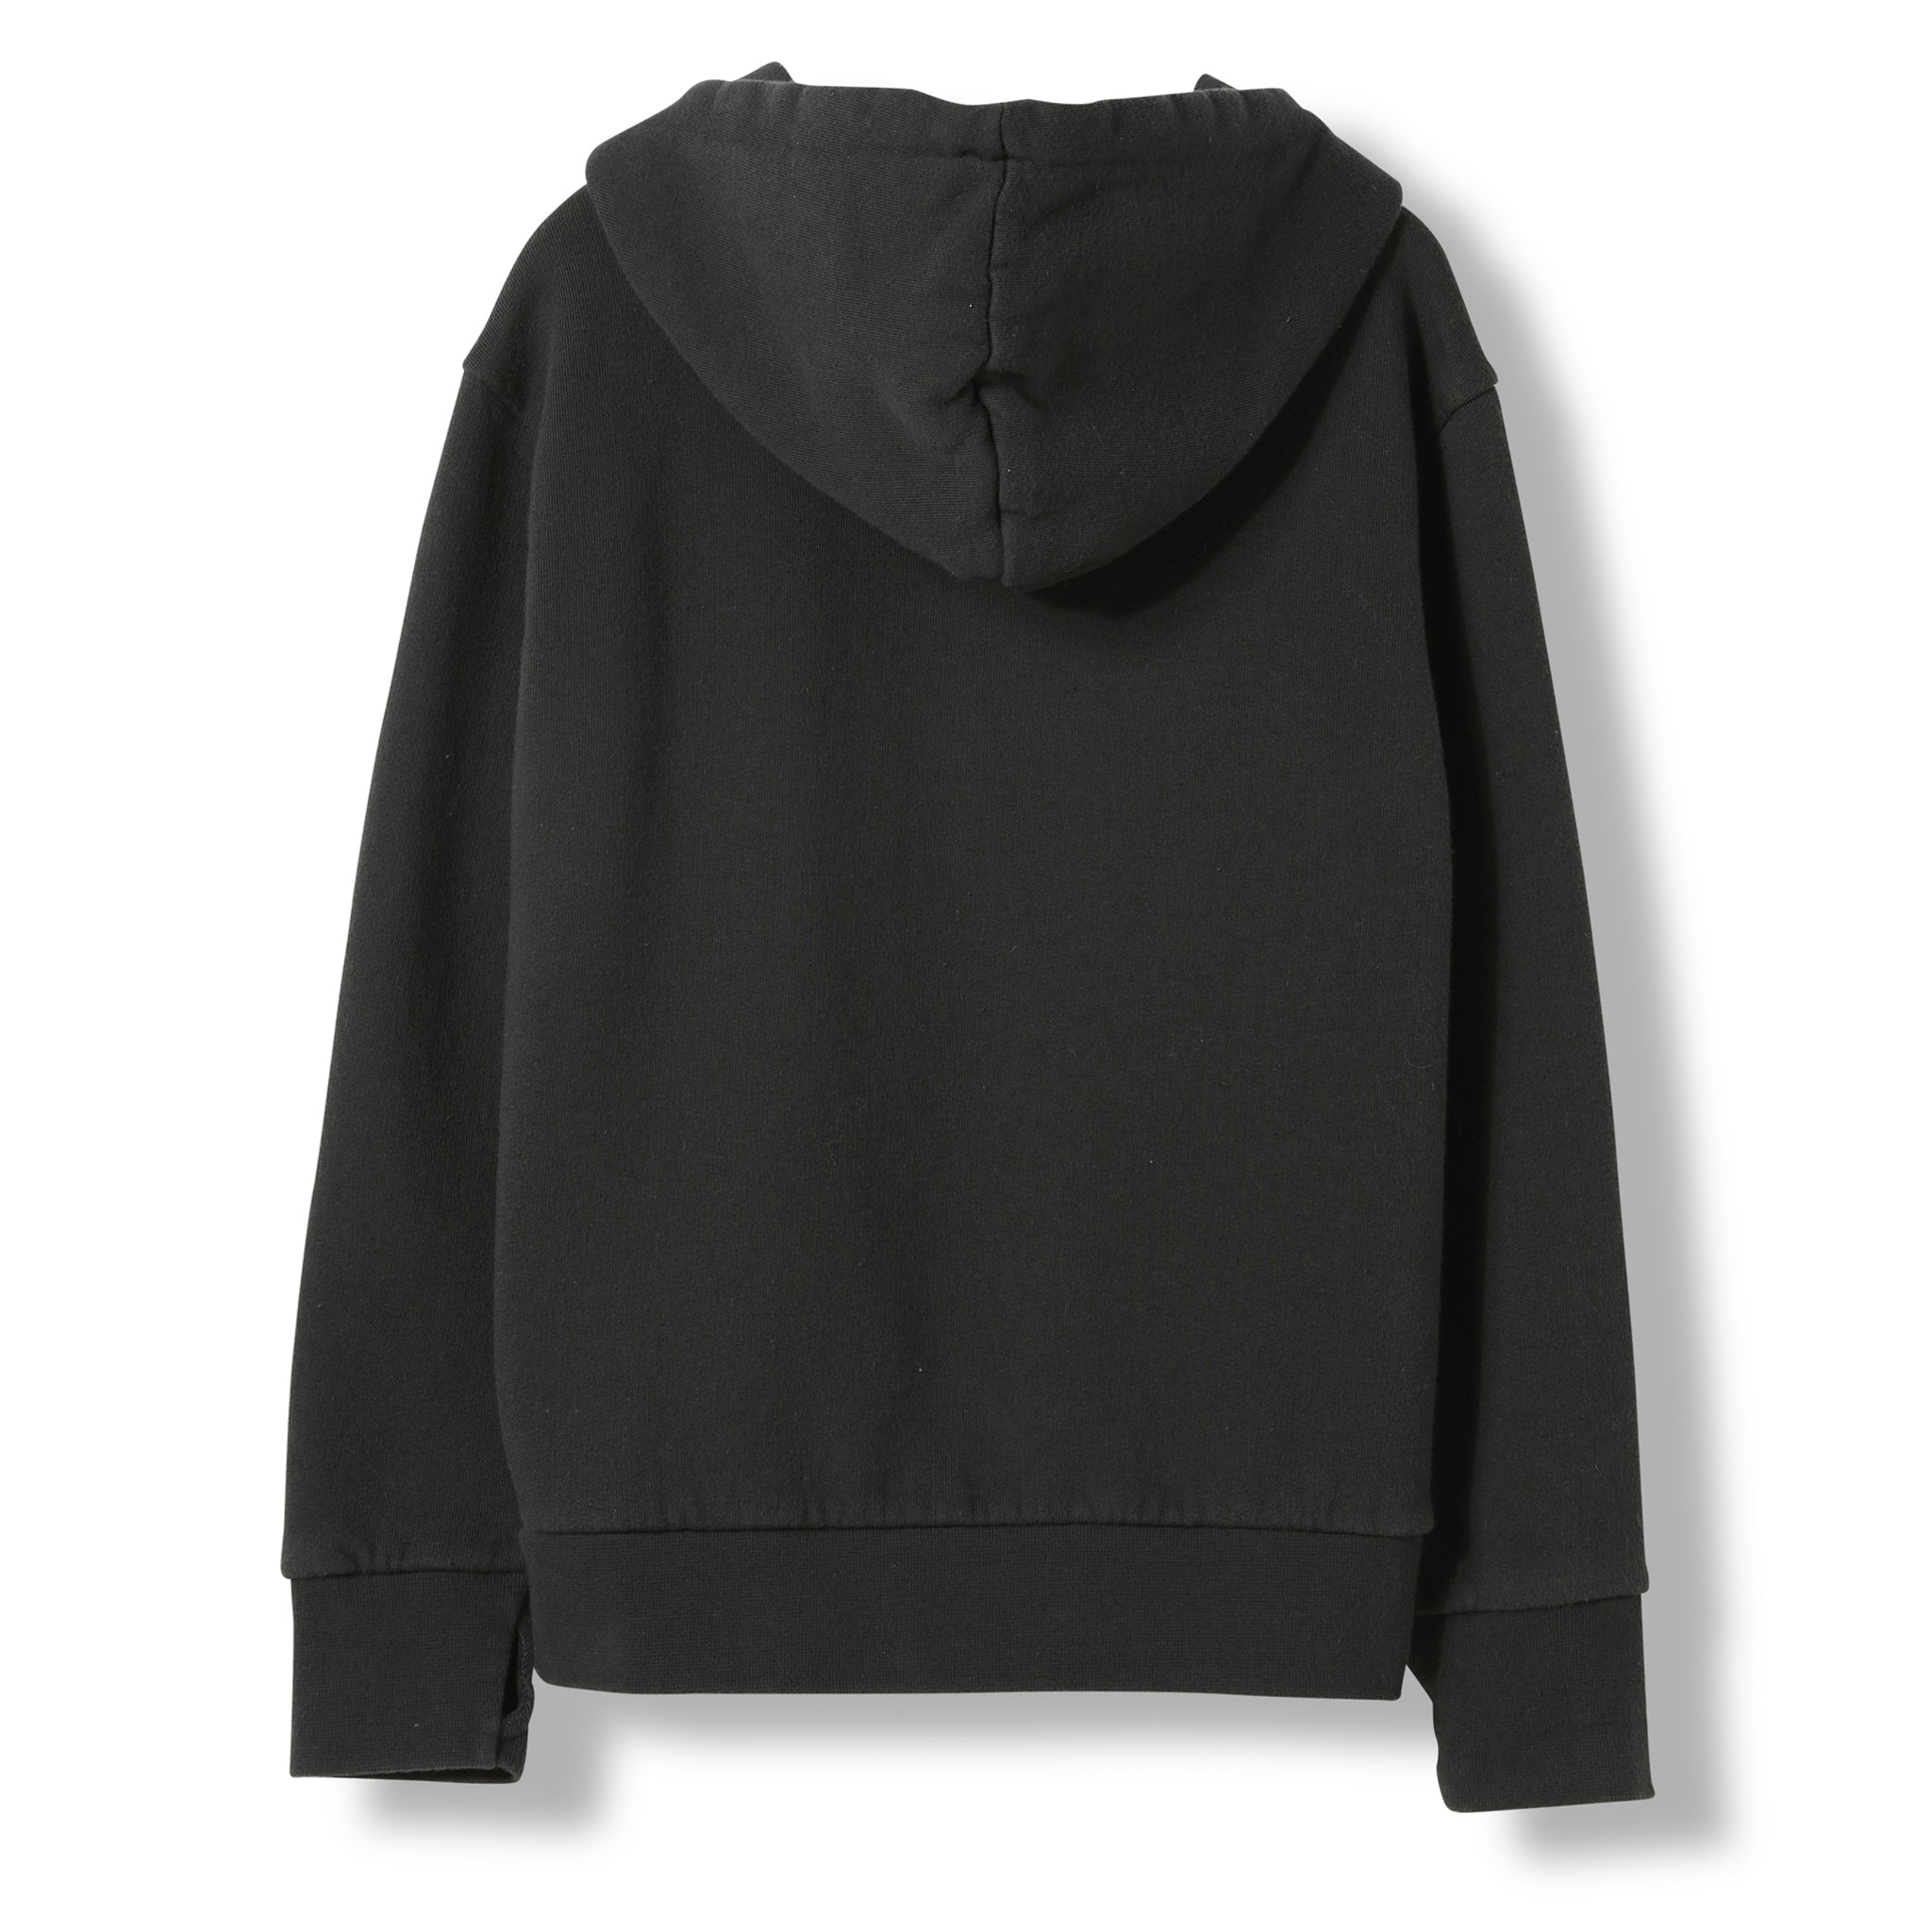 MELBOURNE Ash Black Free Skate -  Knitted Hoody 2